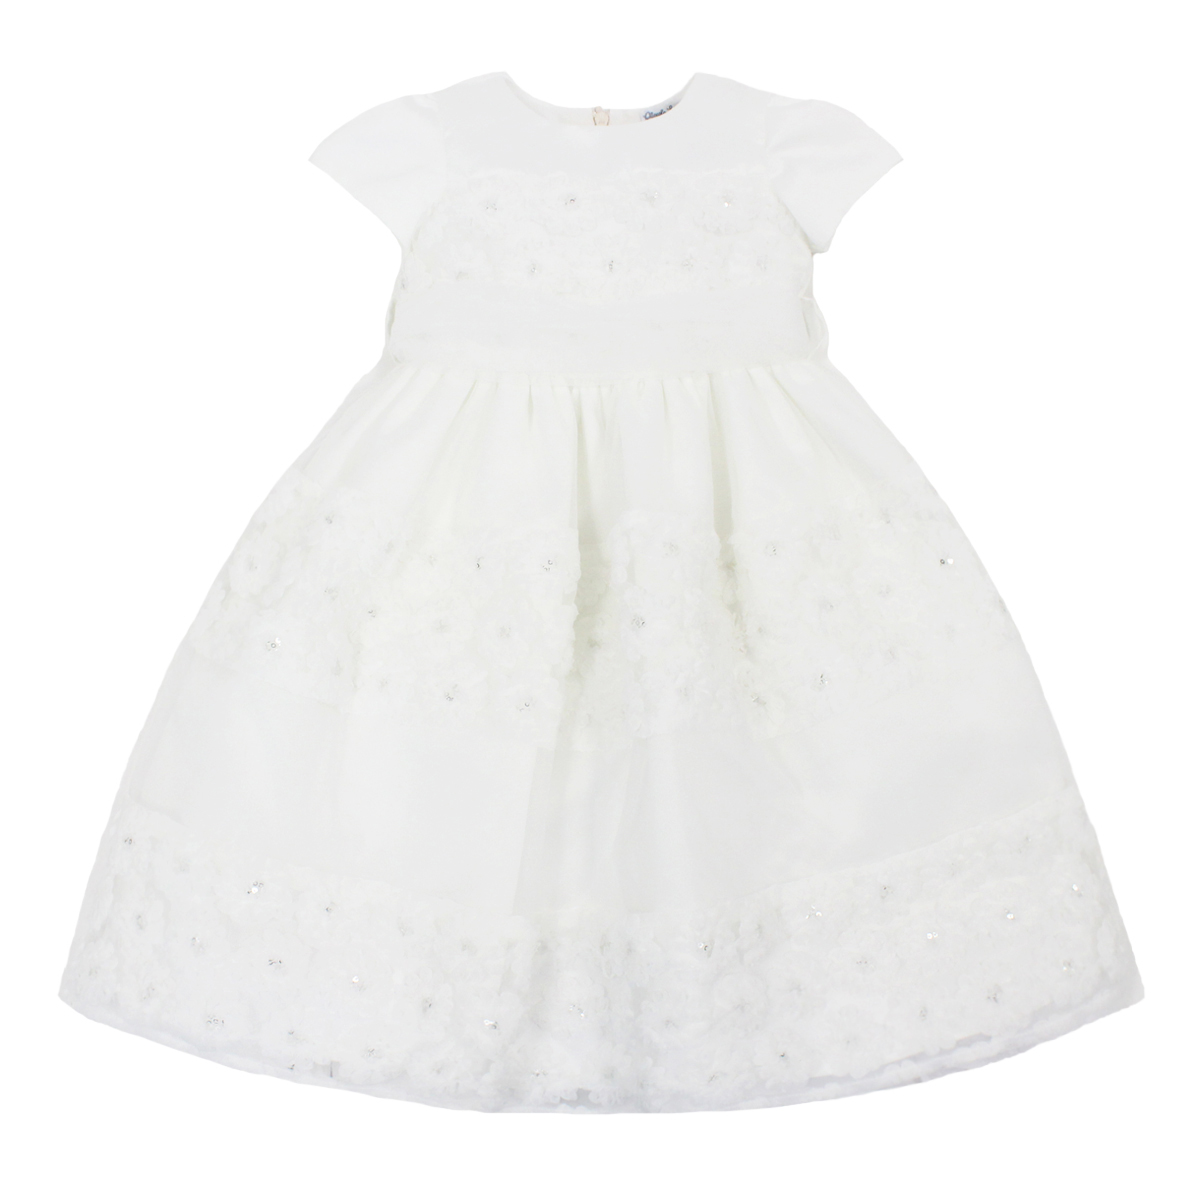 Piccola Ludo Ginestra Dress in White